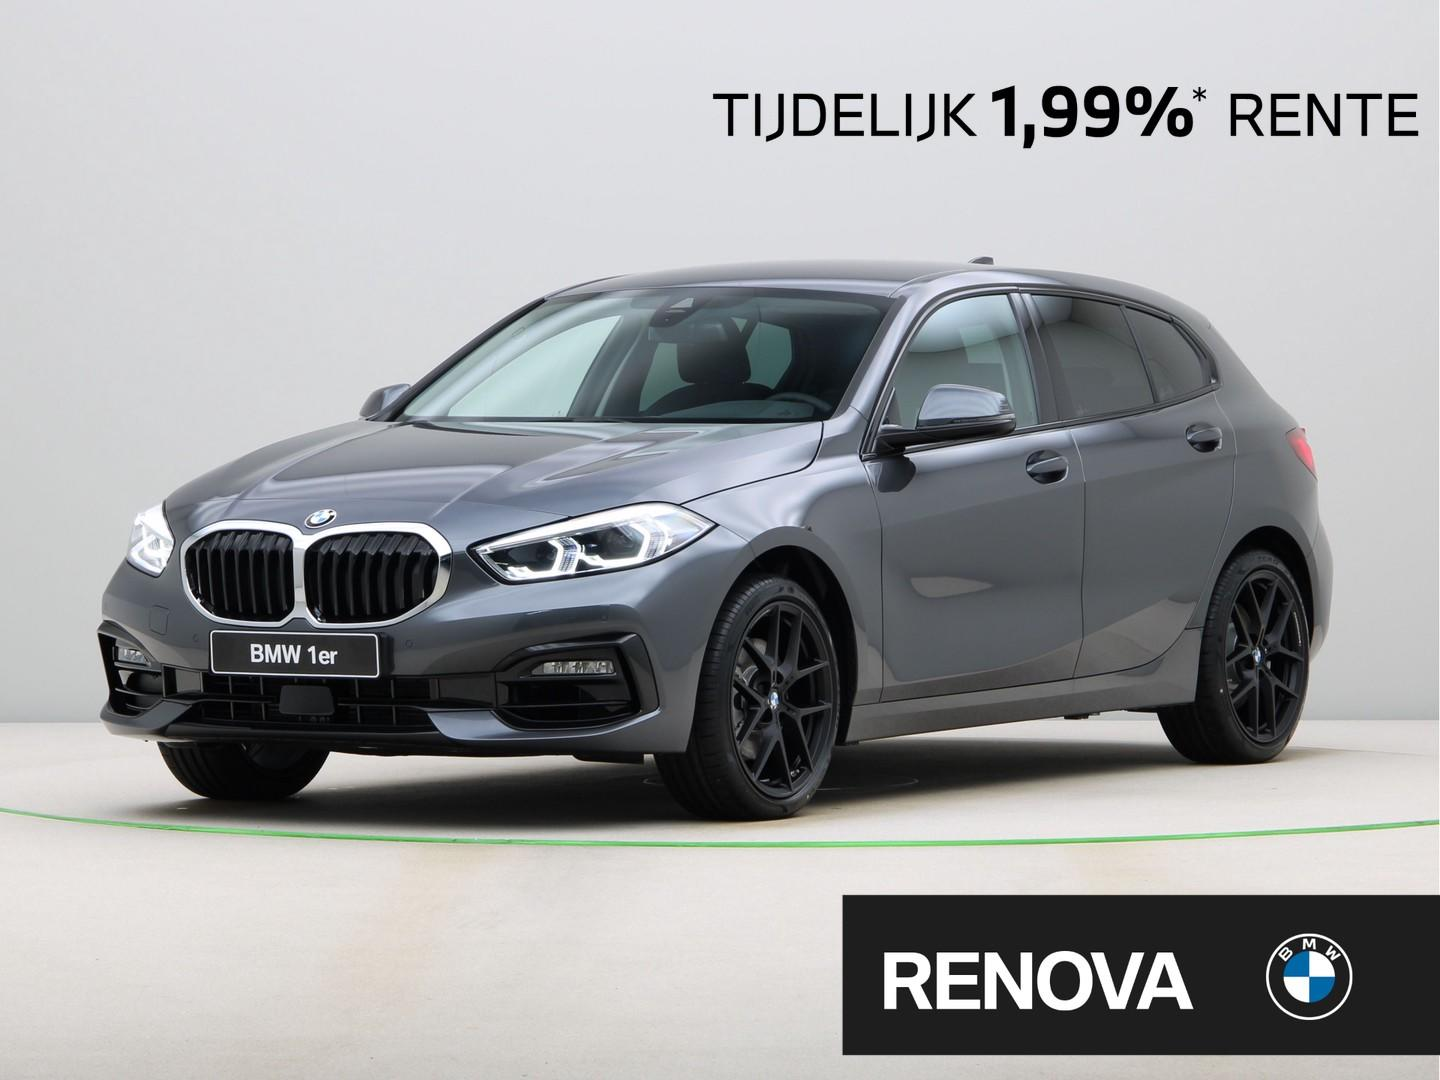 Bmw 1 serie 118i executive 2-zone aut.airconditioning